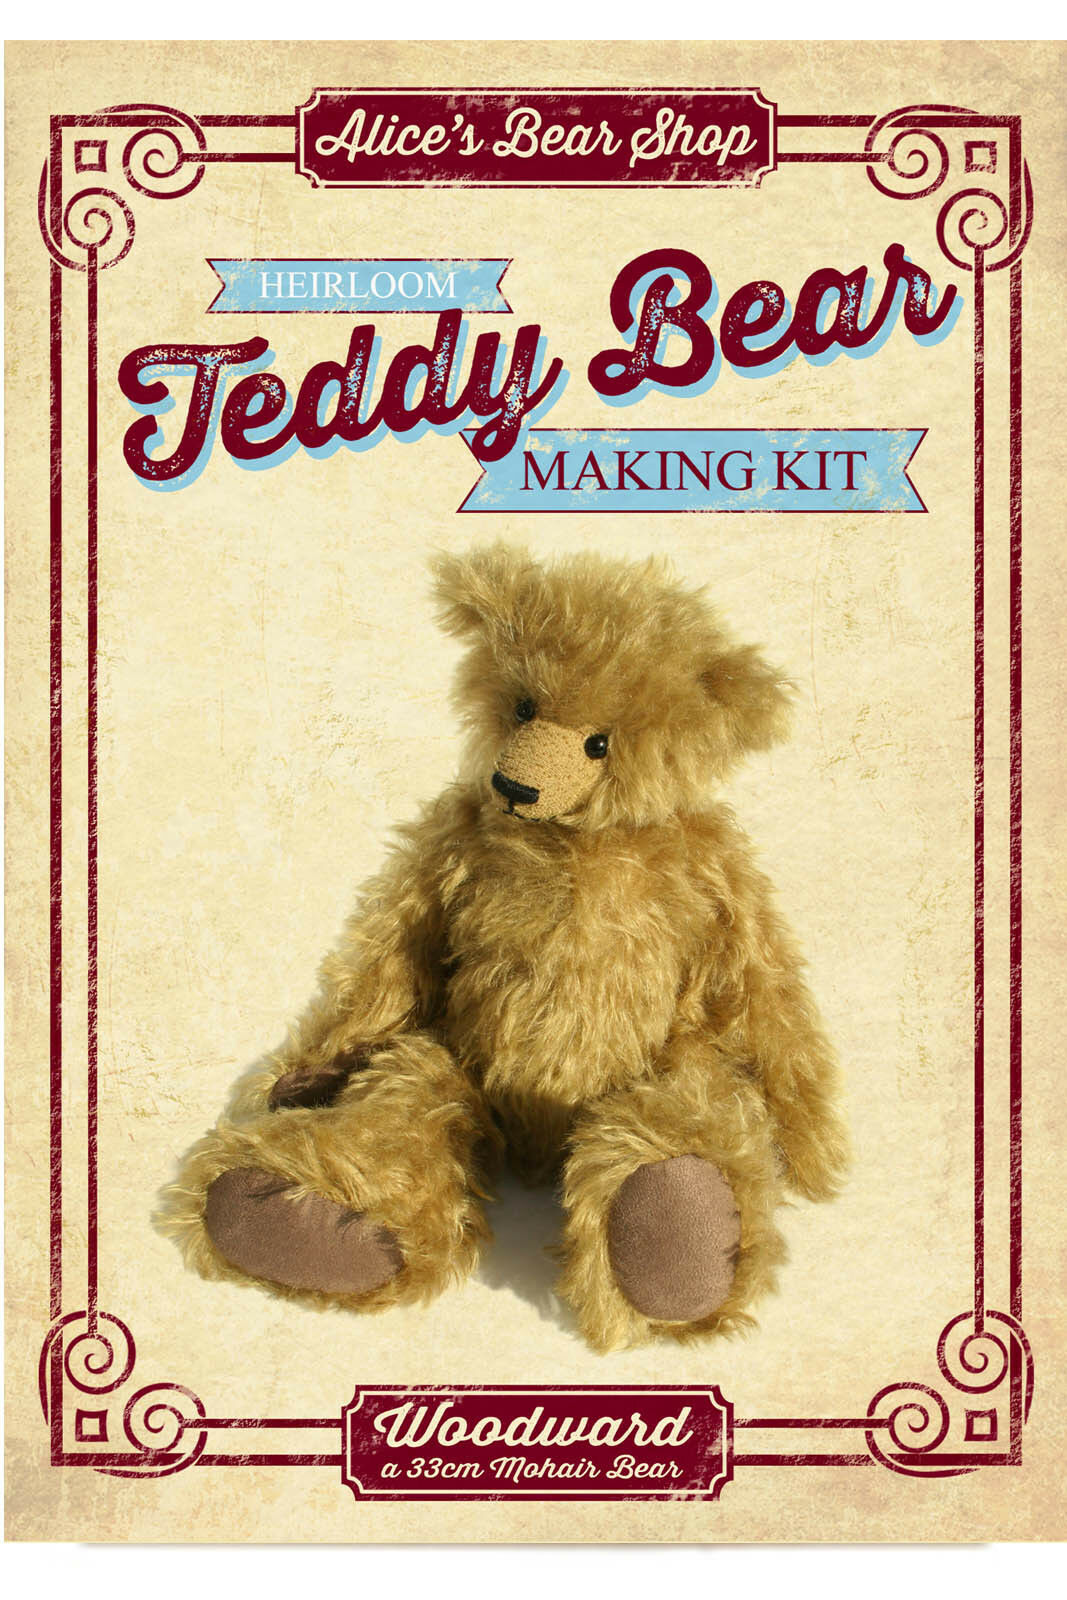 Sewing a Teddy Bear - Mohair Teddy Bear Sewing Kit - Woodward - 33cm when made